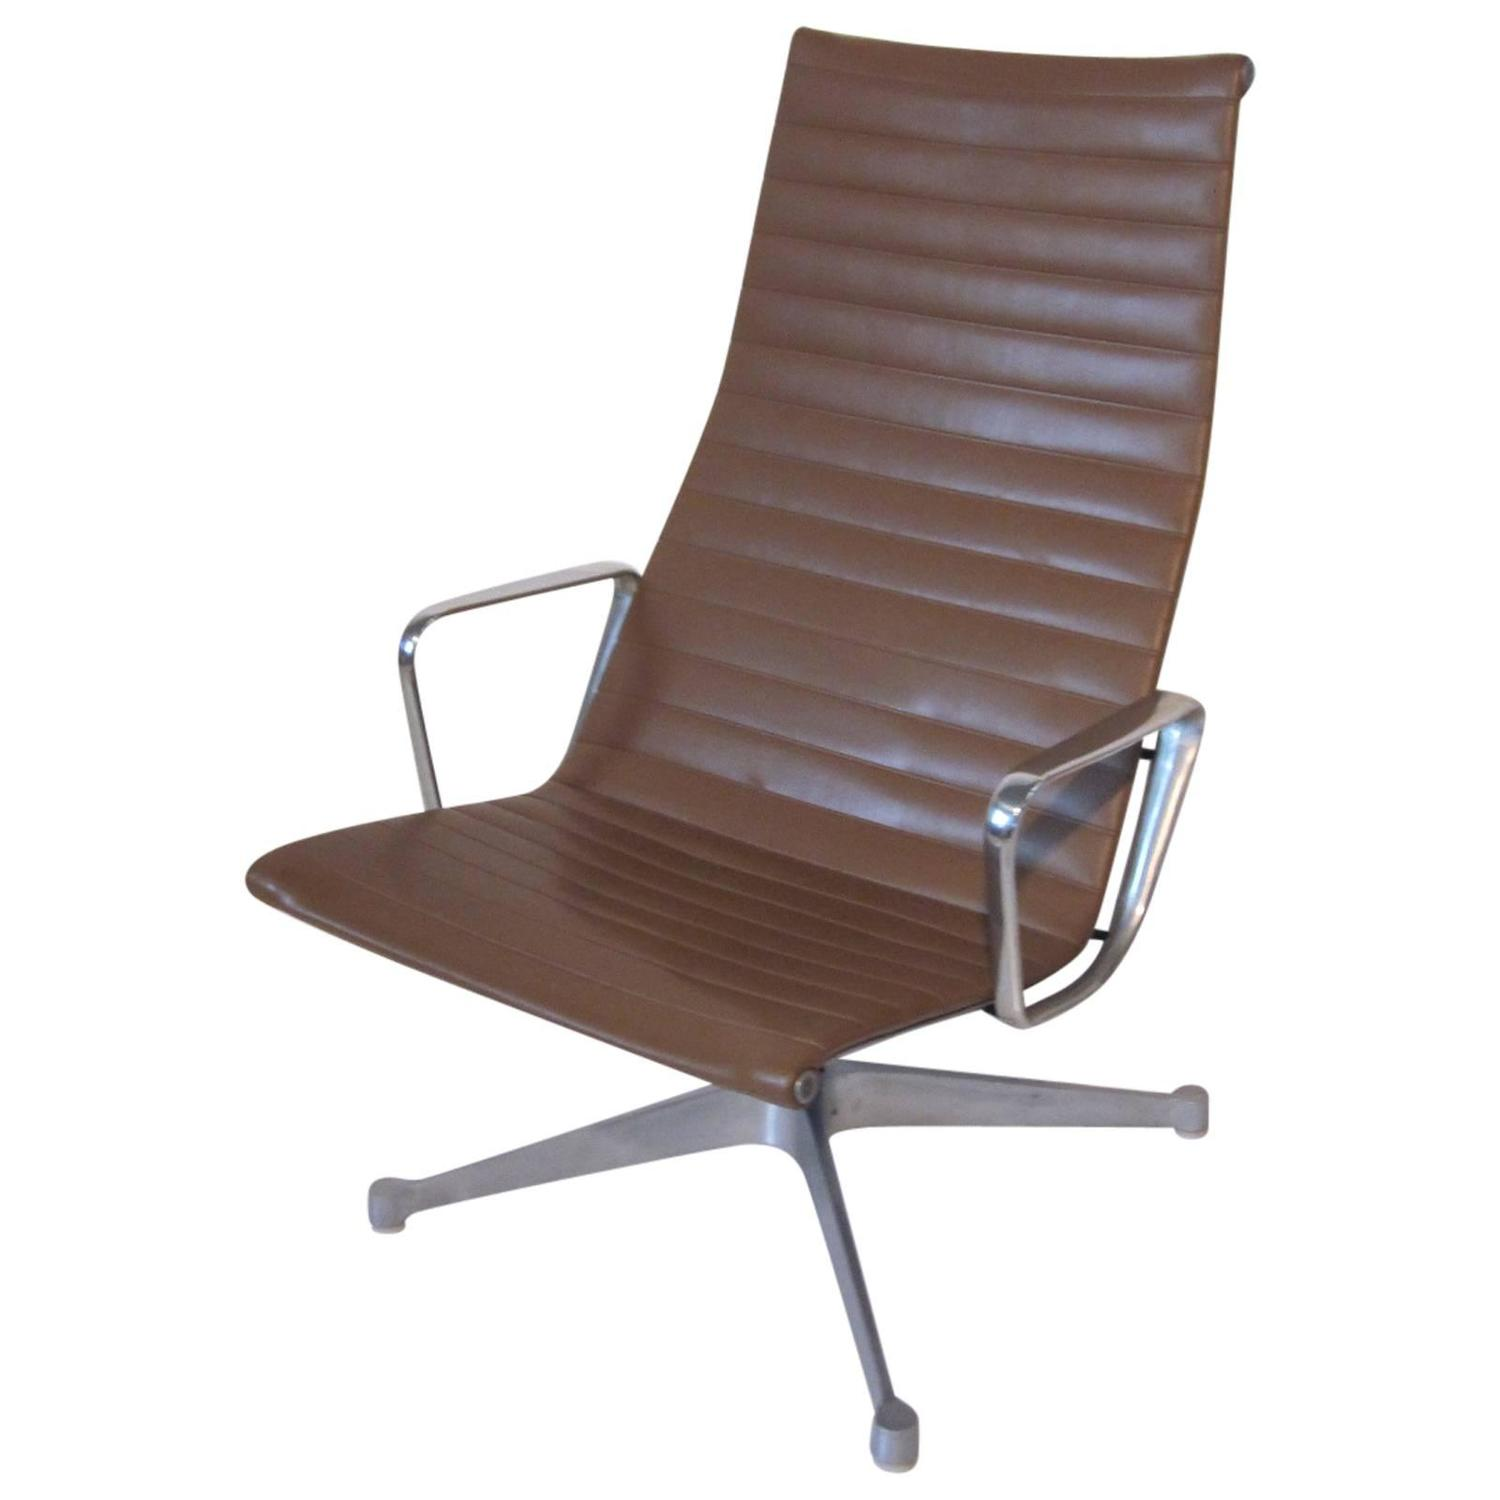 Eames aluminum group lounge chair for herman miller at 1stdibs for Herman miller eames aluminum group management chair